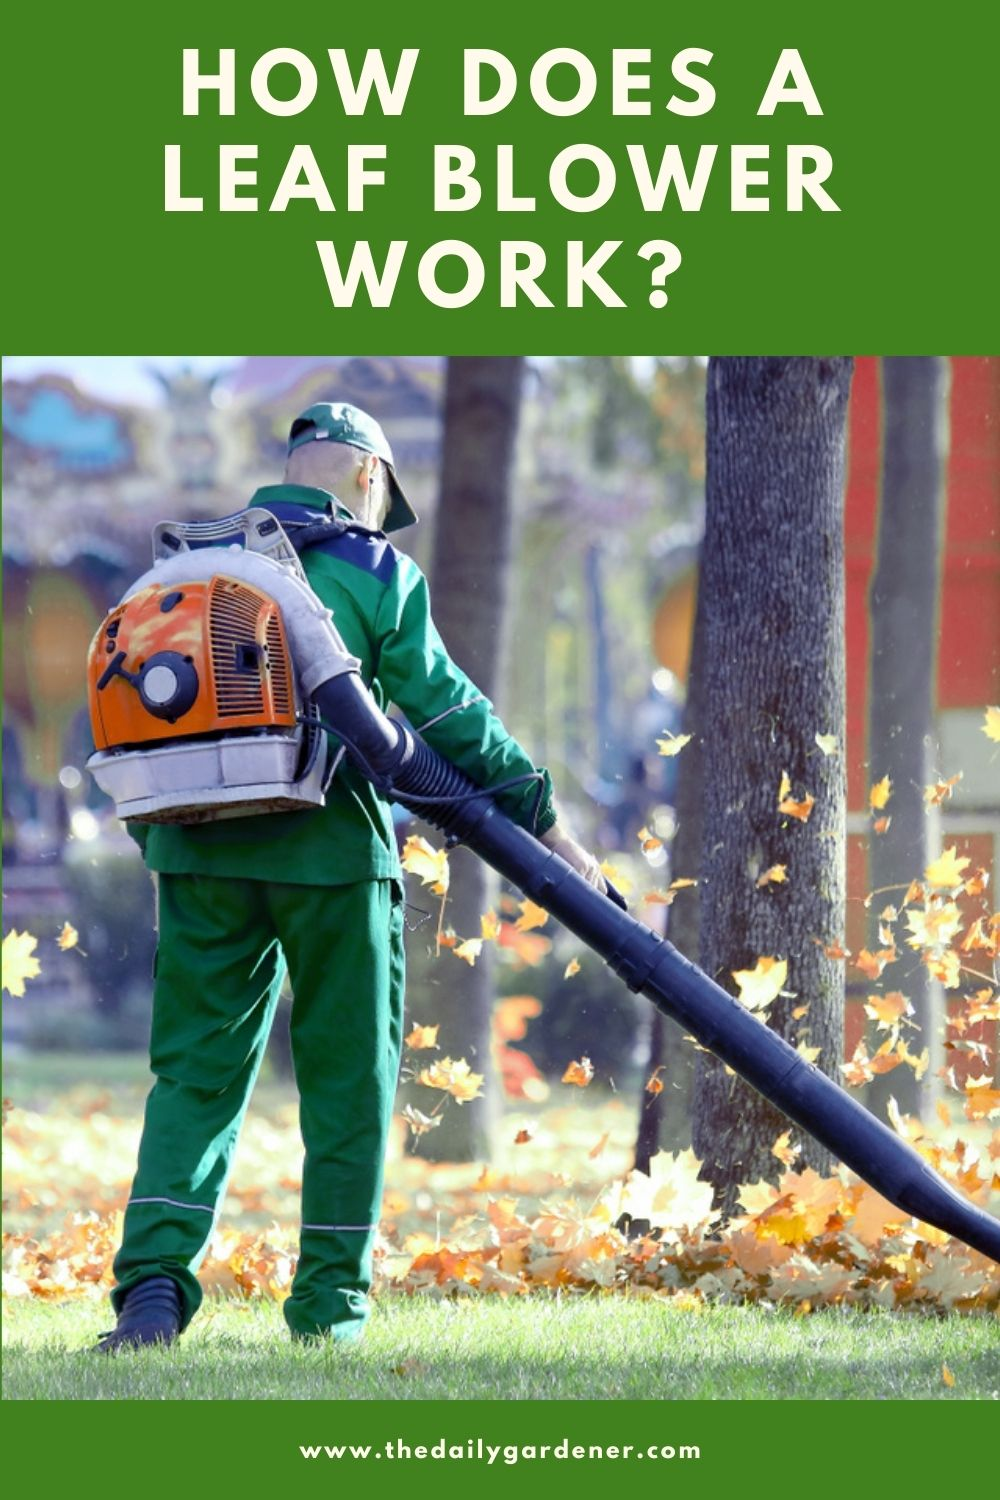 How Does a Leaf Blower Work 1